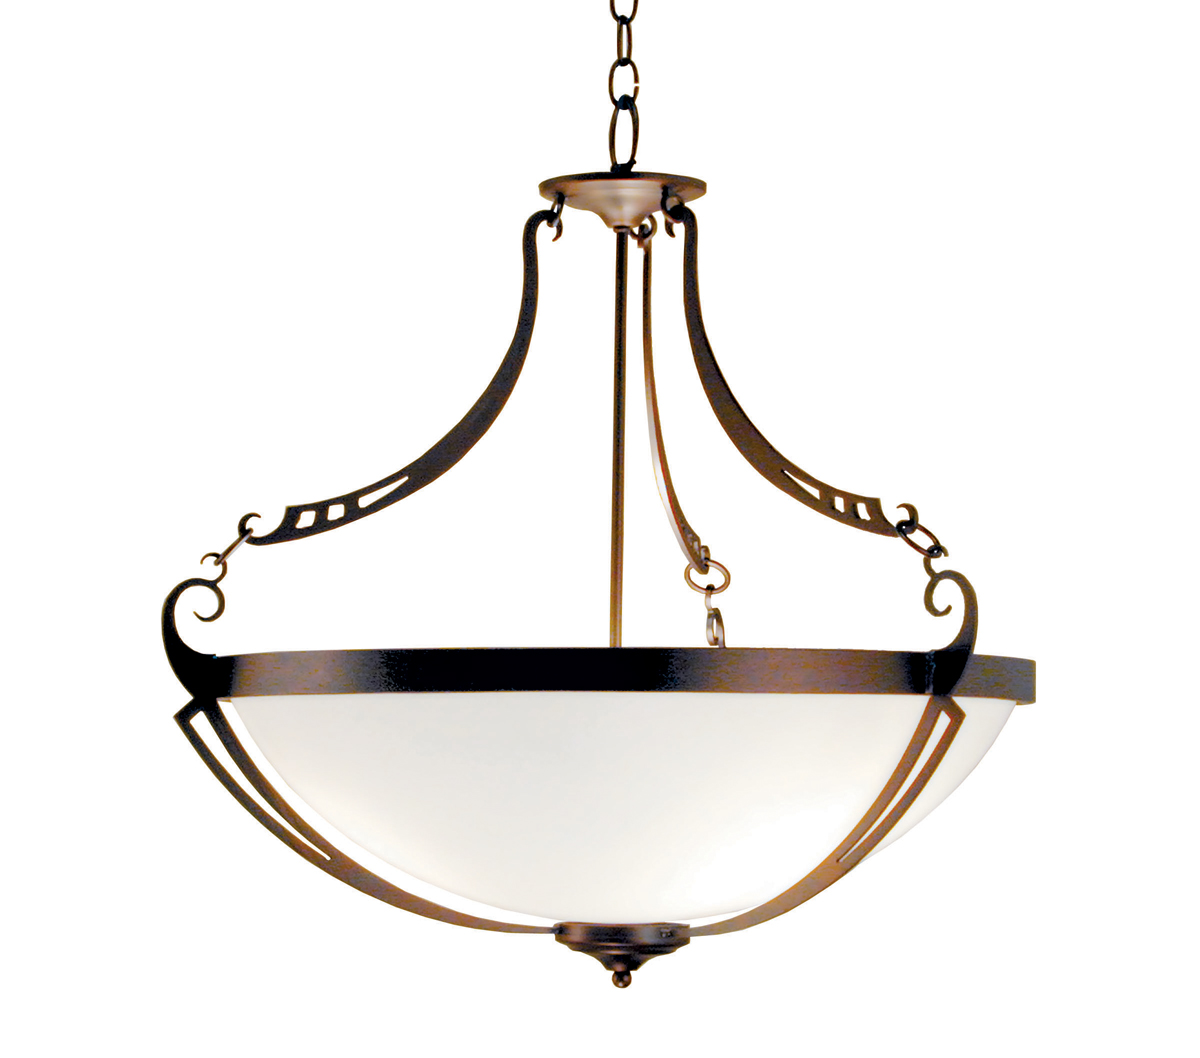 2nd Avenue Lighting Focus 28 Inch Pendant Shown In Rusty Nail Finish